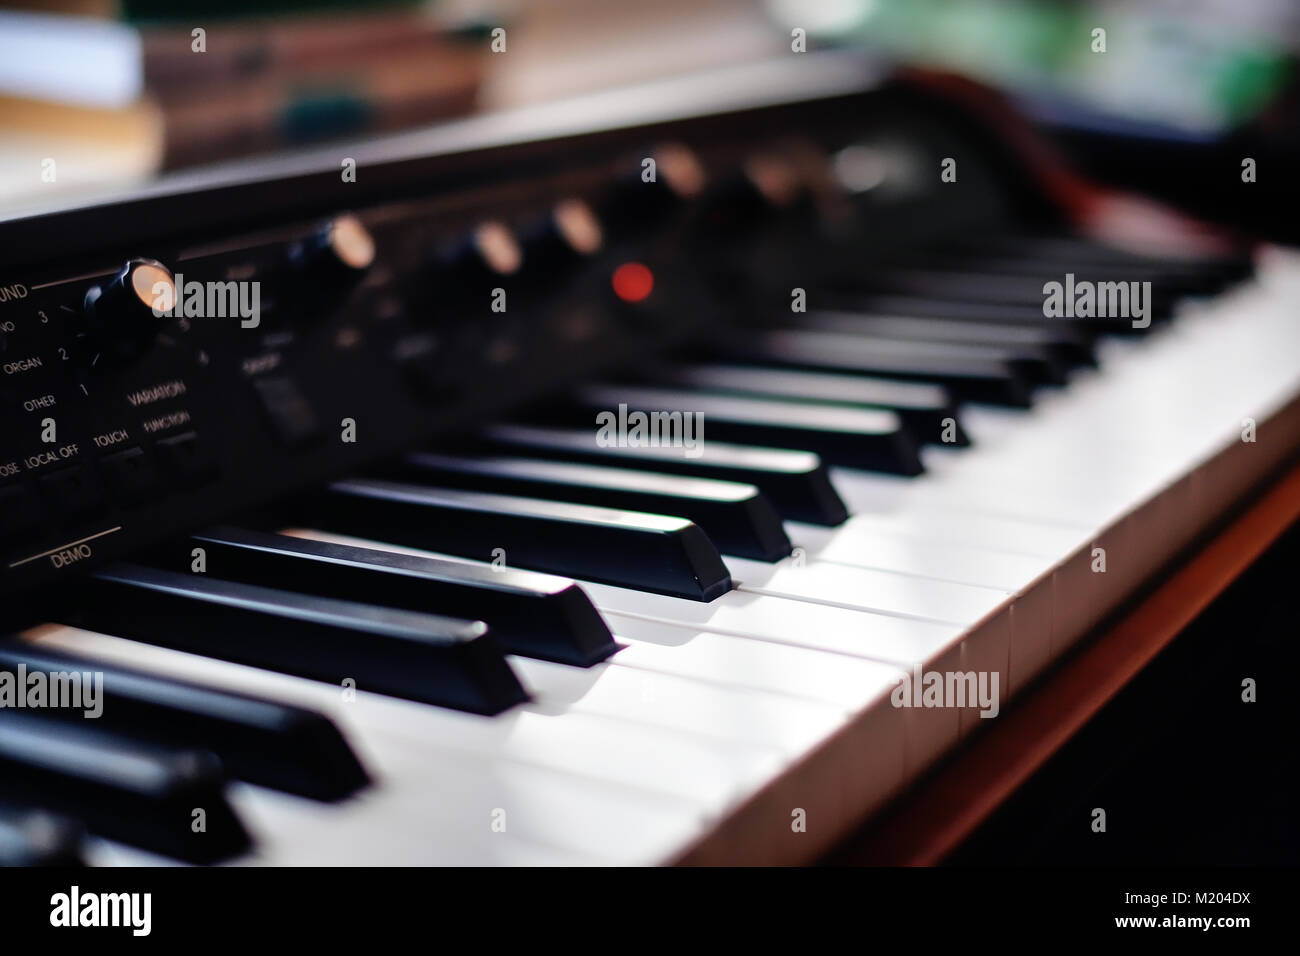 Close-up of a beautiful vintage keyboard in a recording